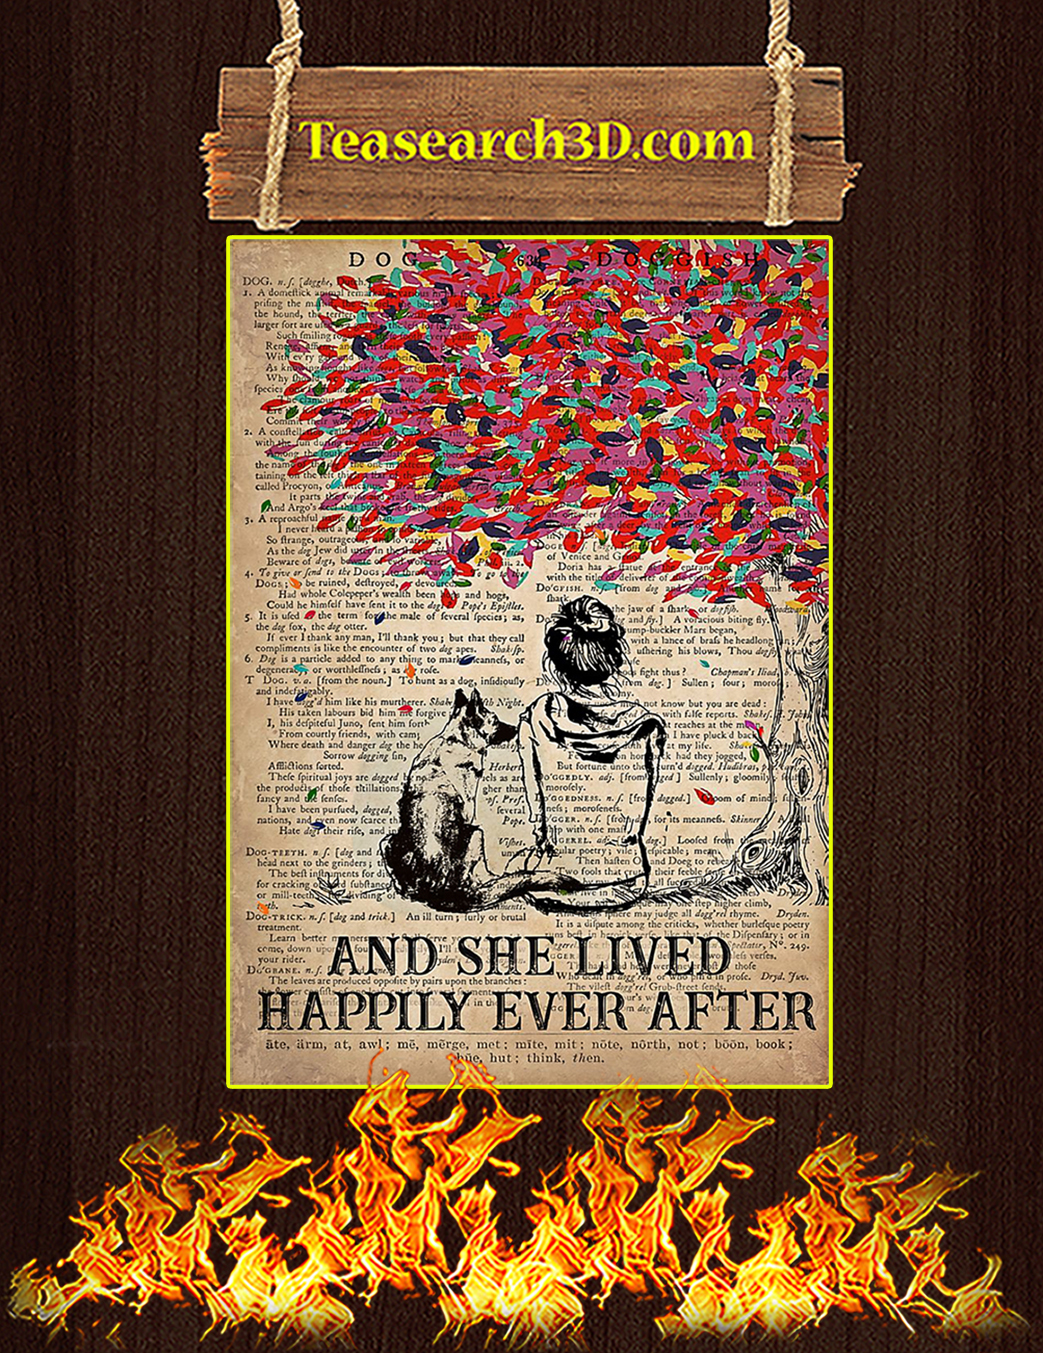 Dog K9 And she lived happily ever after poster A1